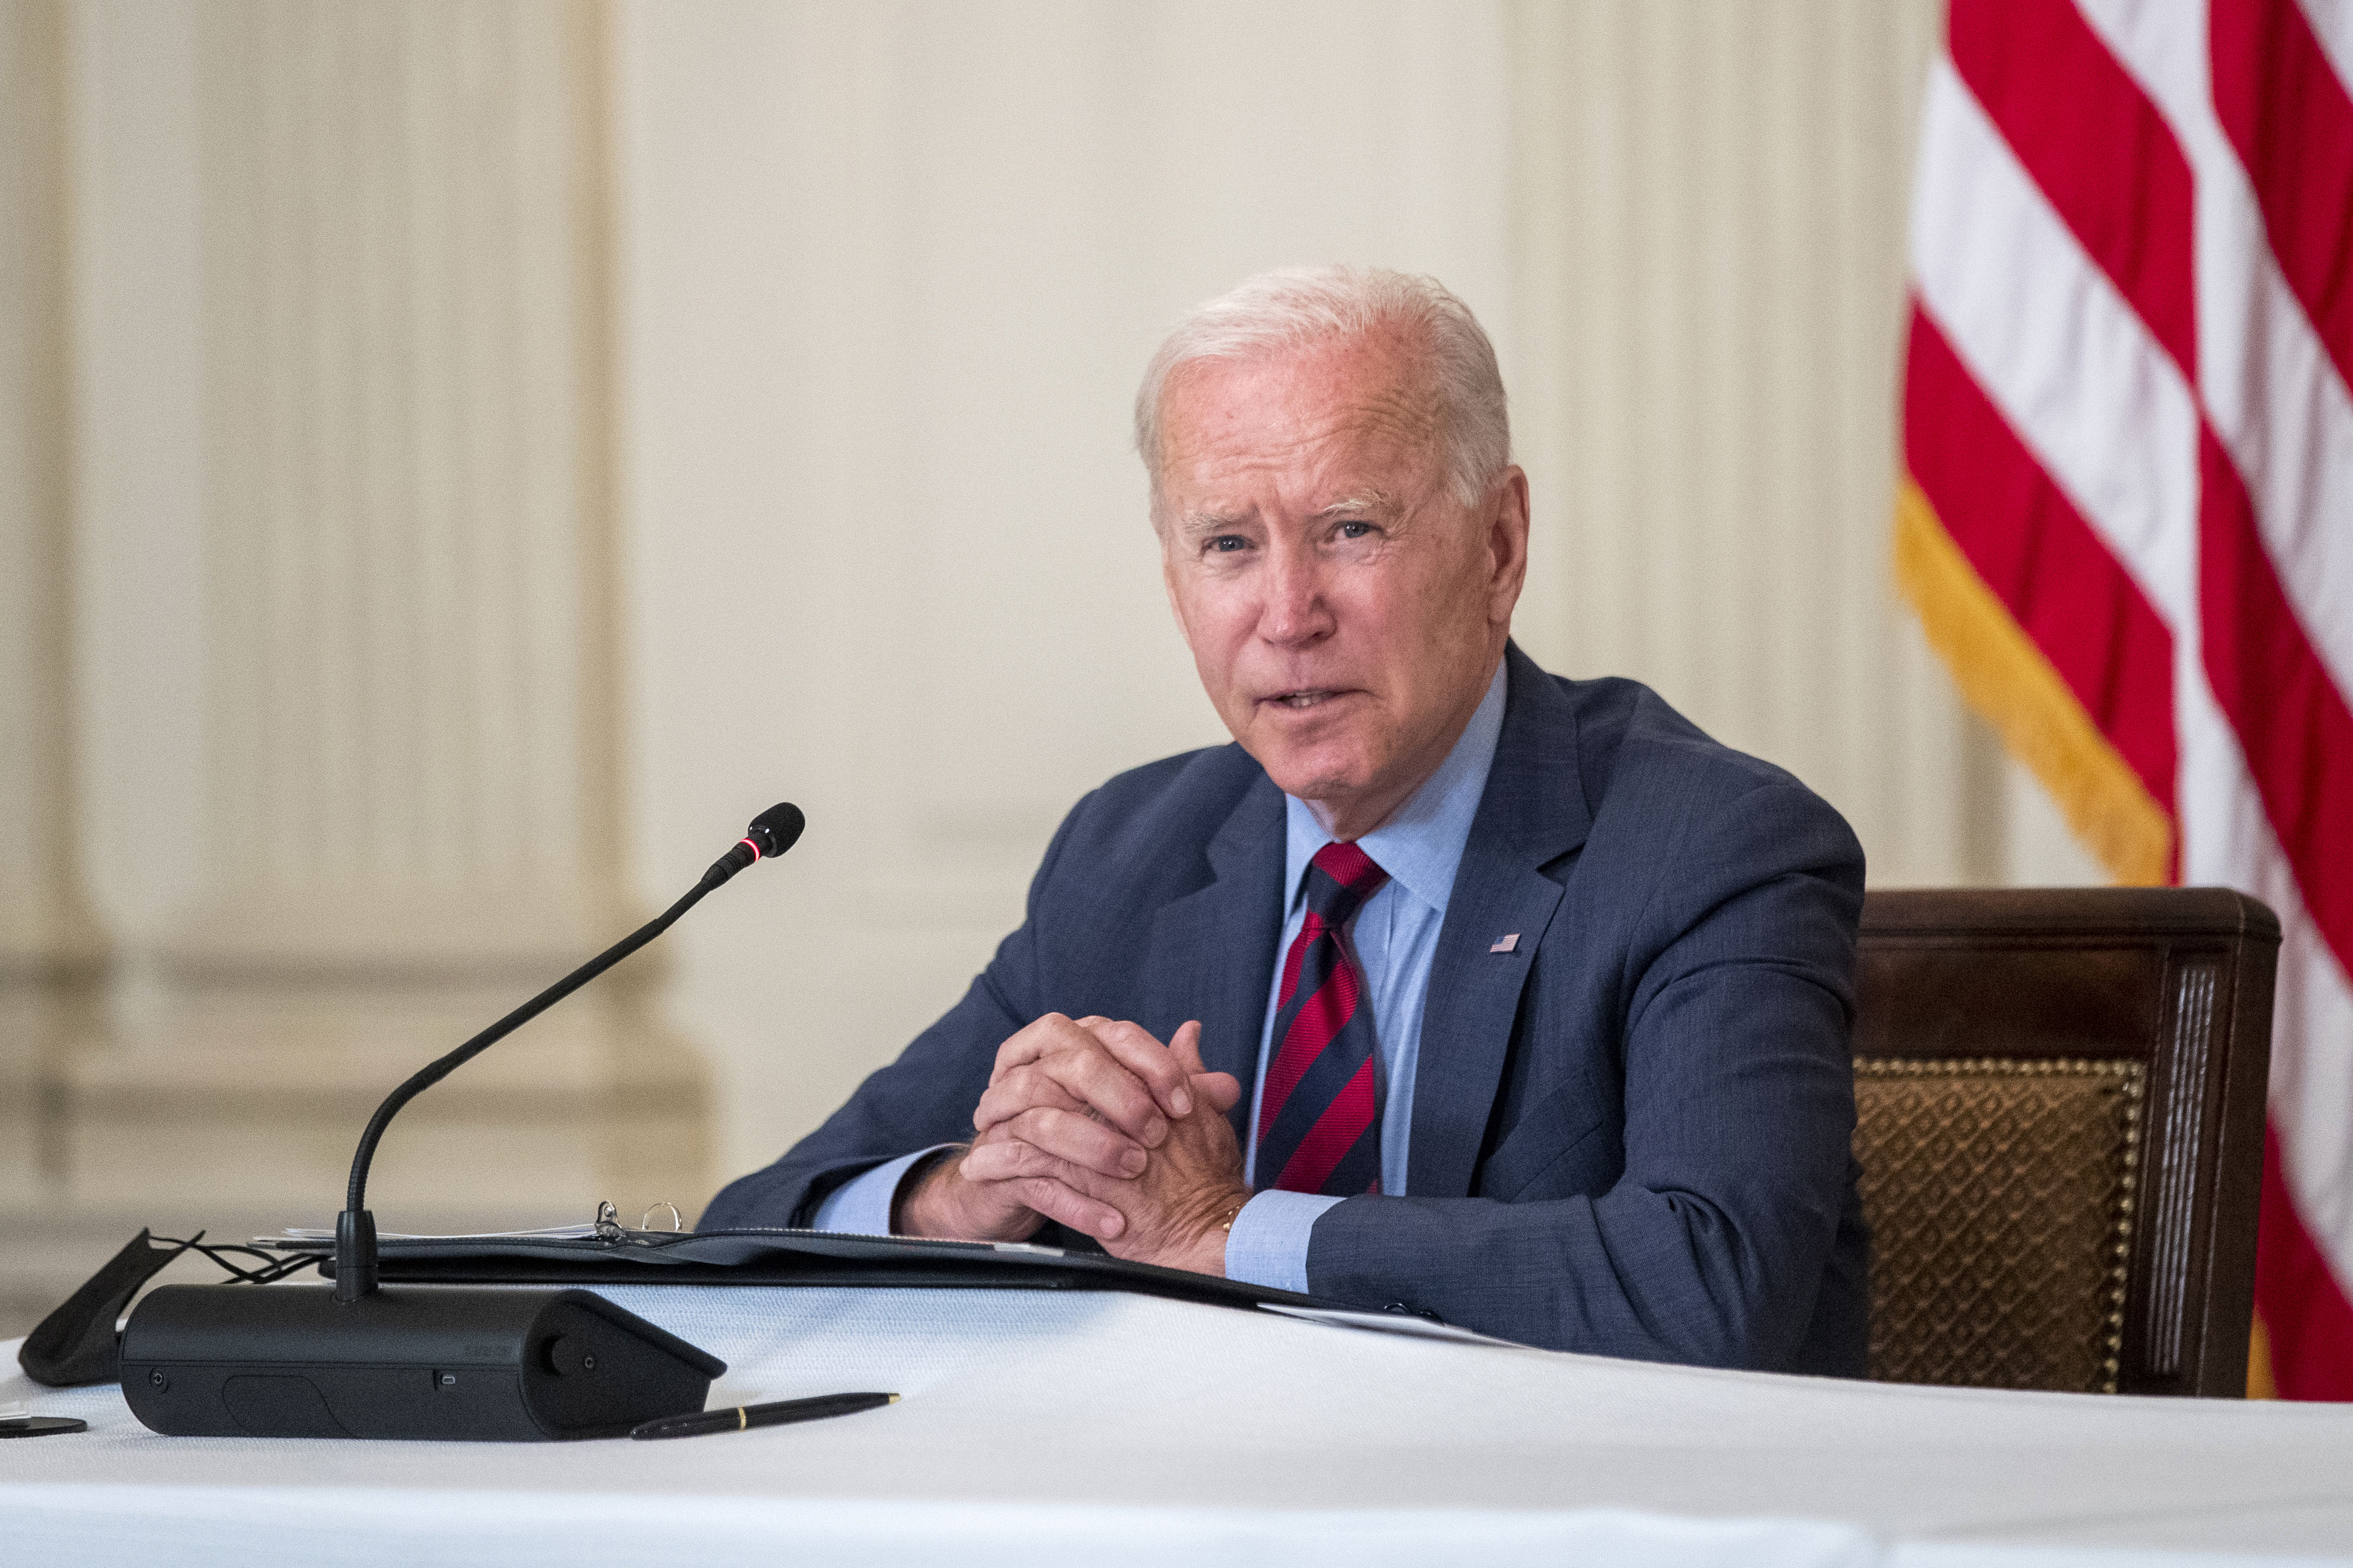 US President Joe Biden speaks during a meeting at the White House on August 3, 2021.